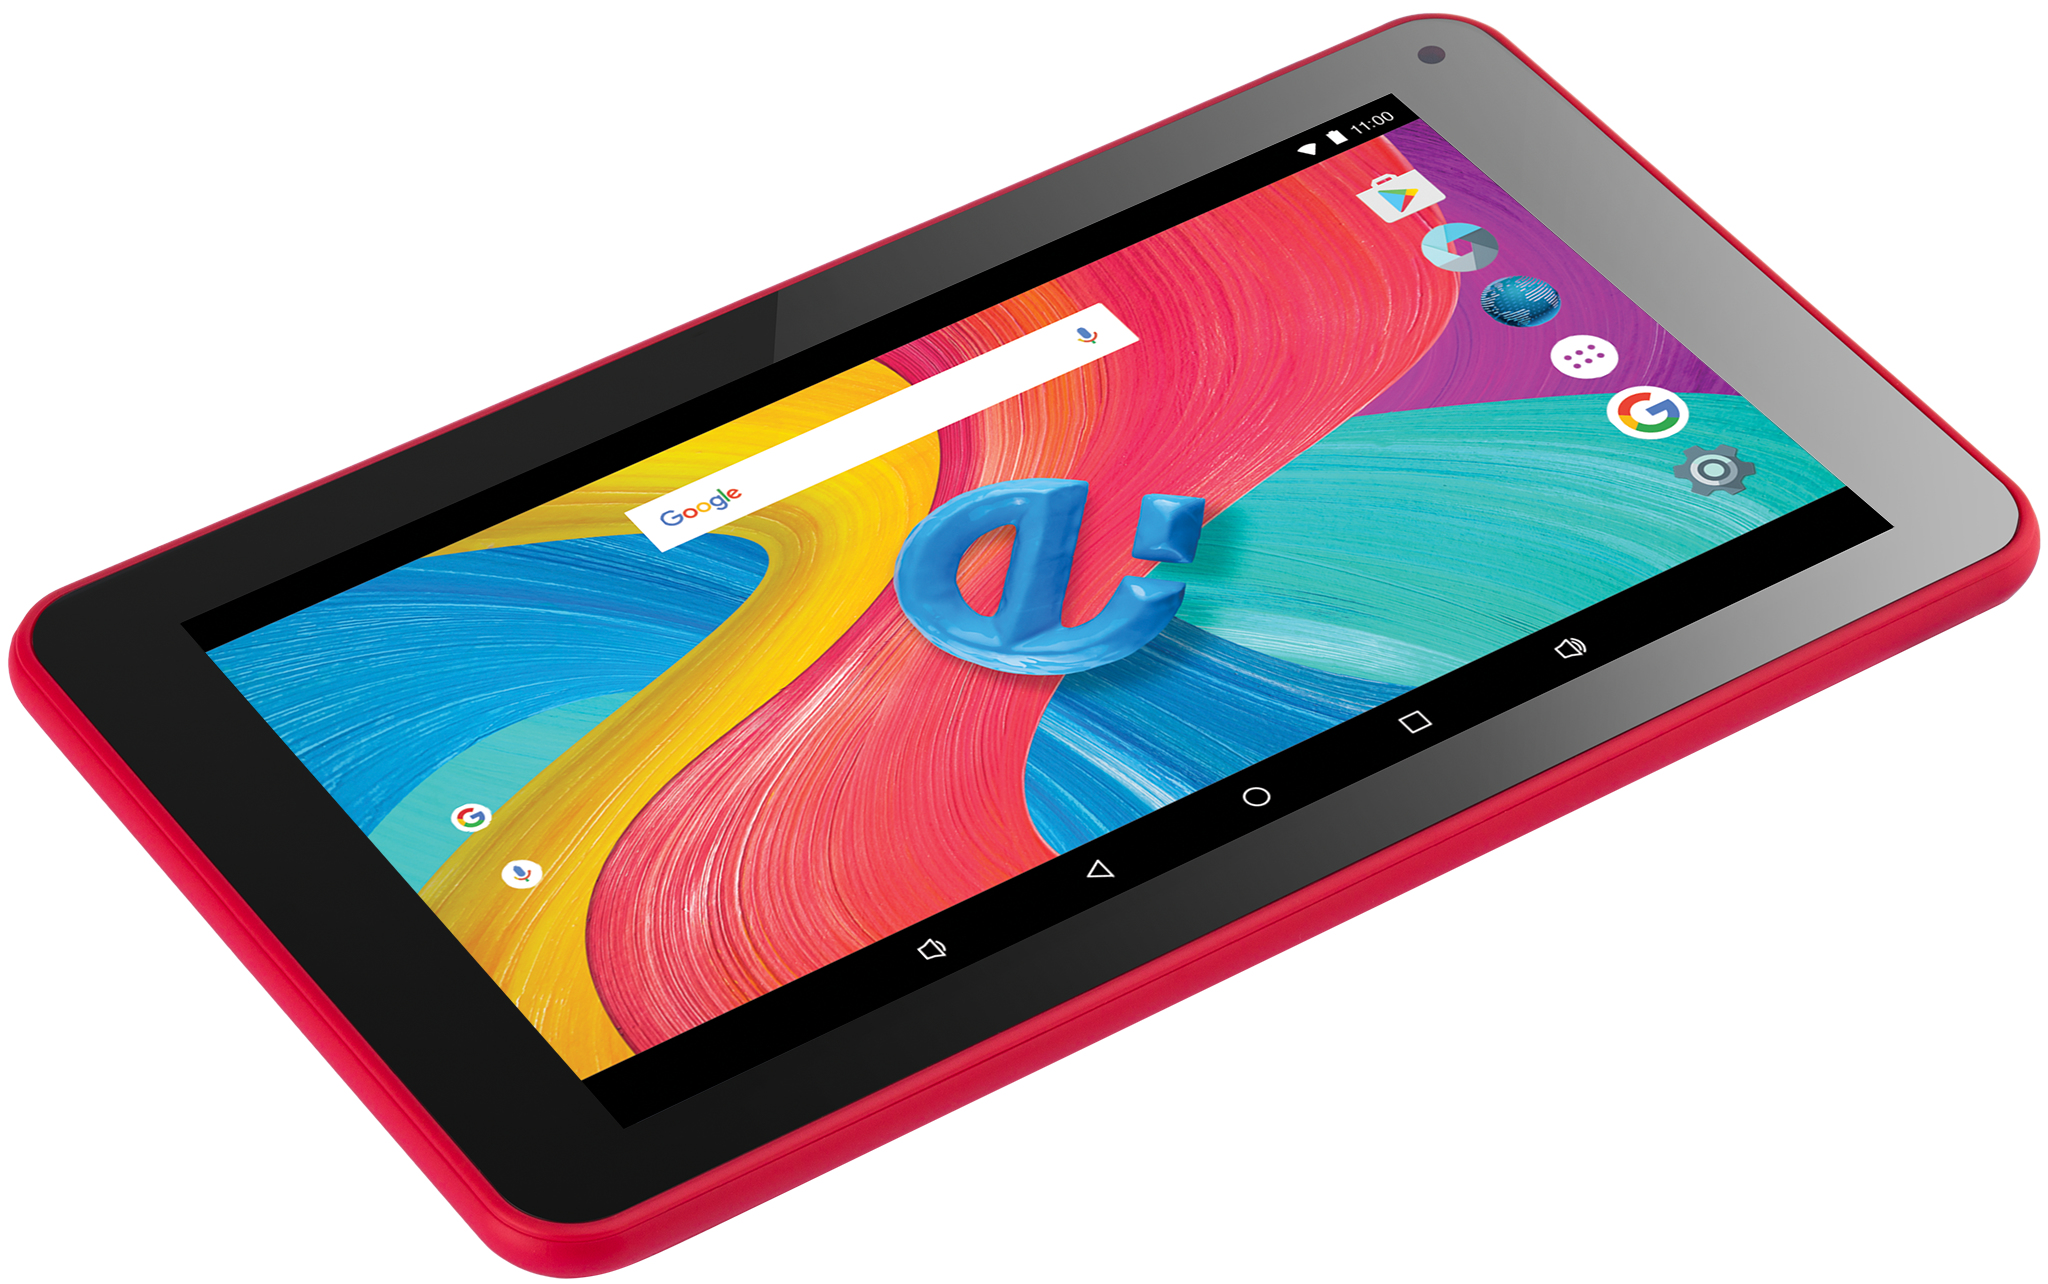 BEAUTY 2 8GB NEGRO, ROJO TABLET